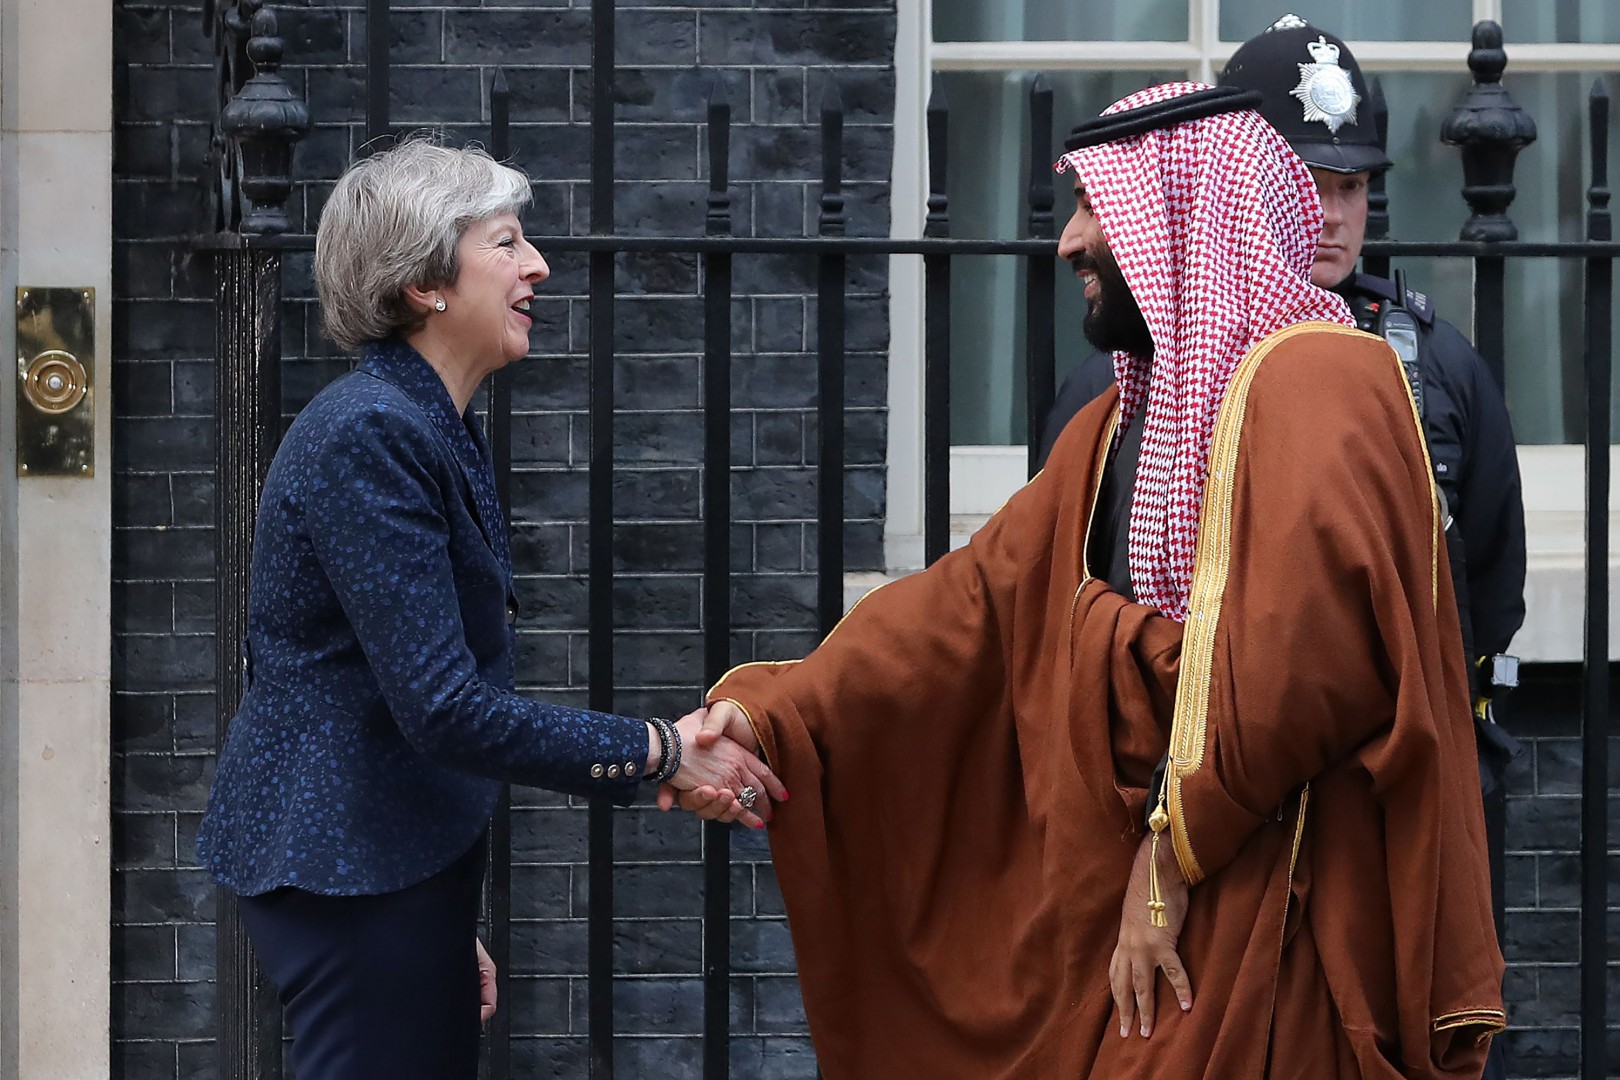 "Britain's Prime Minister Theresa May (L) greets Saudi Arabia's Crown Prince Mohammed bin Salman (R) outside 10 Downing Street, in central London on March 7, 2018. British Prime Minister Theresa May will ""raise deep concerns at the humanitarian situation"" in war-torn Yemen with Saudi Crown Prince Mohammed bin Salman during his visit to Britain beginning Wednesday, according to her spokesman. / AFP PHOTO / Daniel LEAL-OLIVAS"